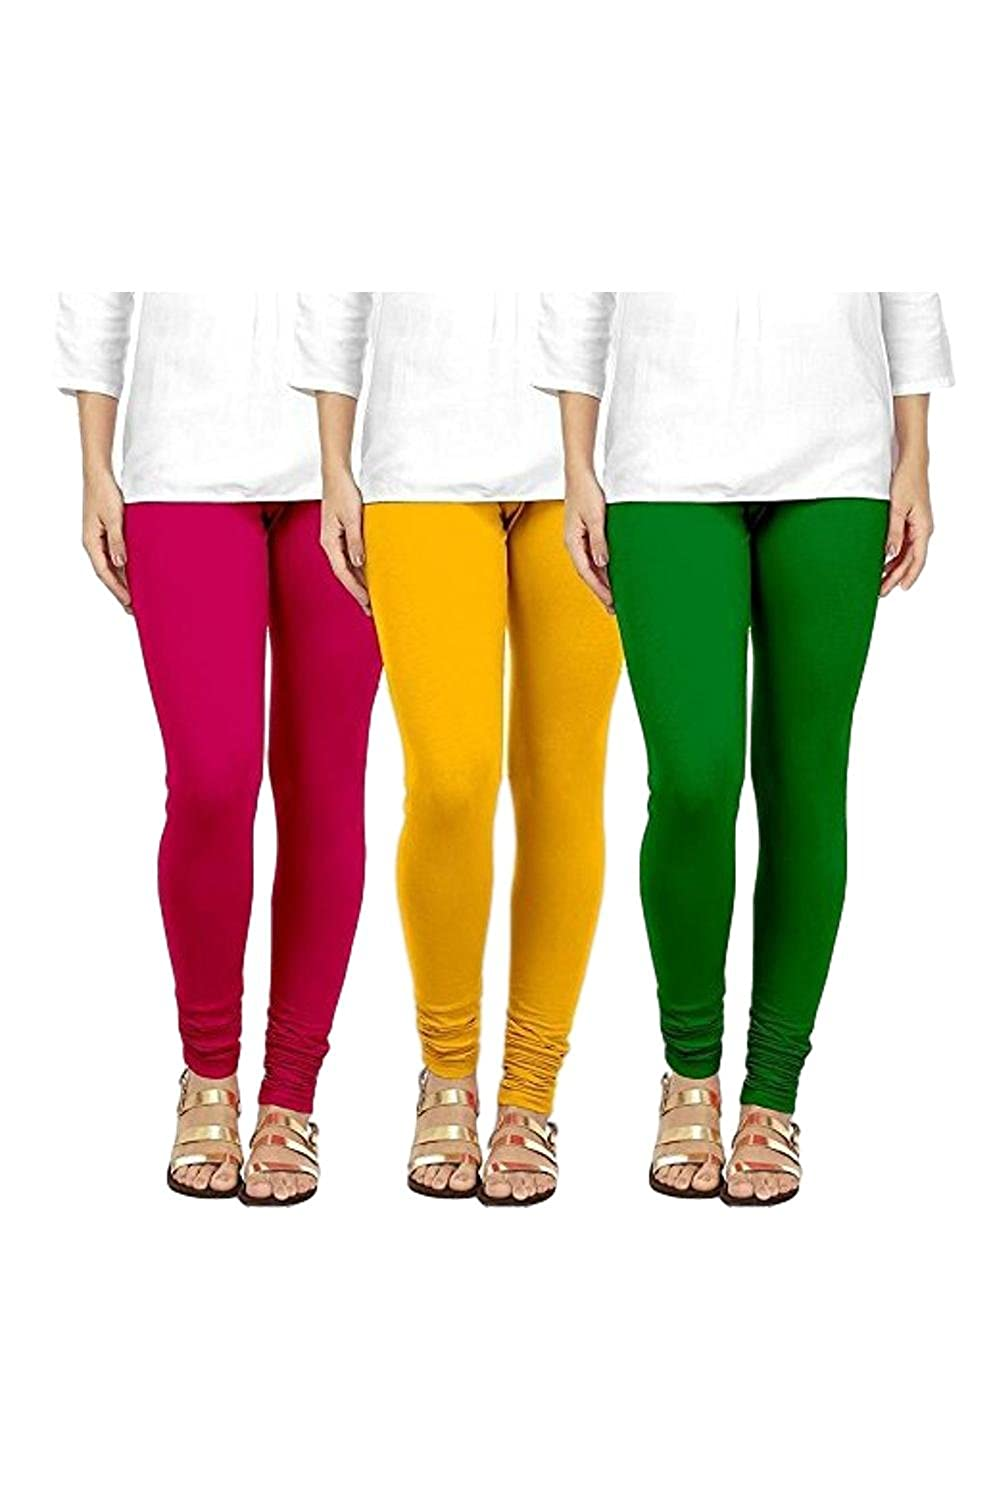 90c6662a480a5a swastik stuffs soft & stretchable cotton lycra churidar free size leggings  combo offer for women (